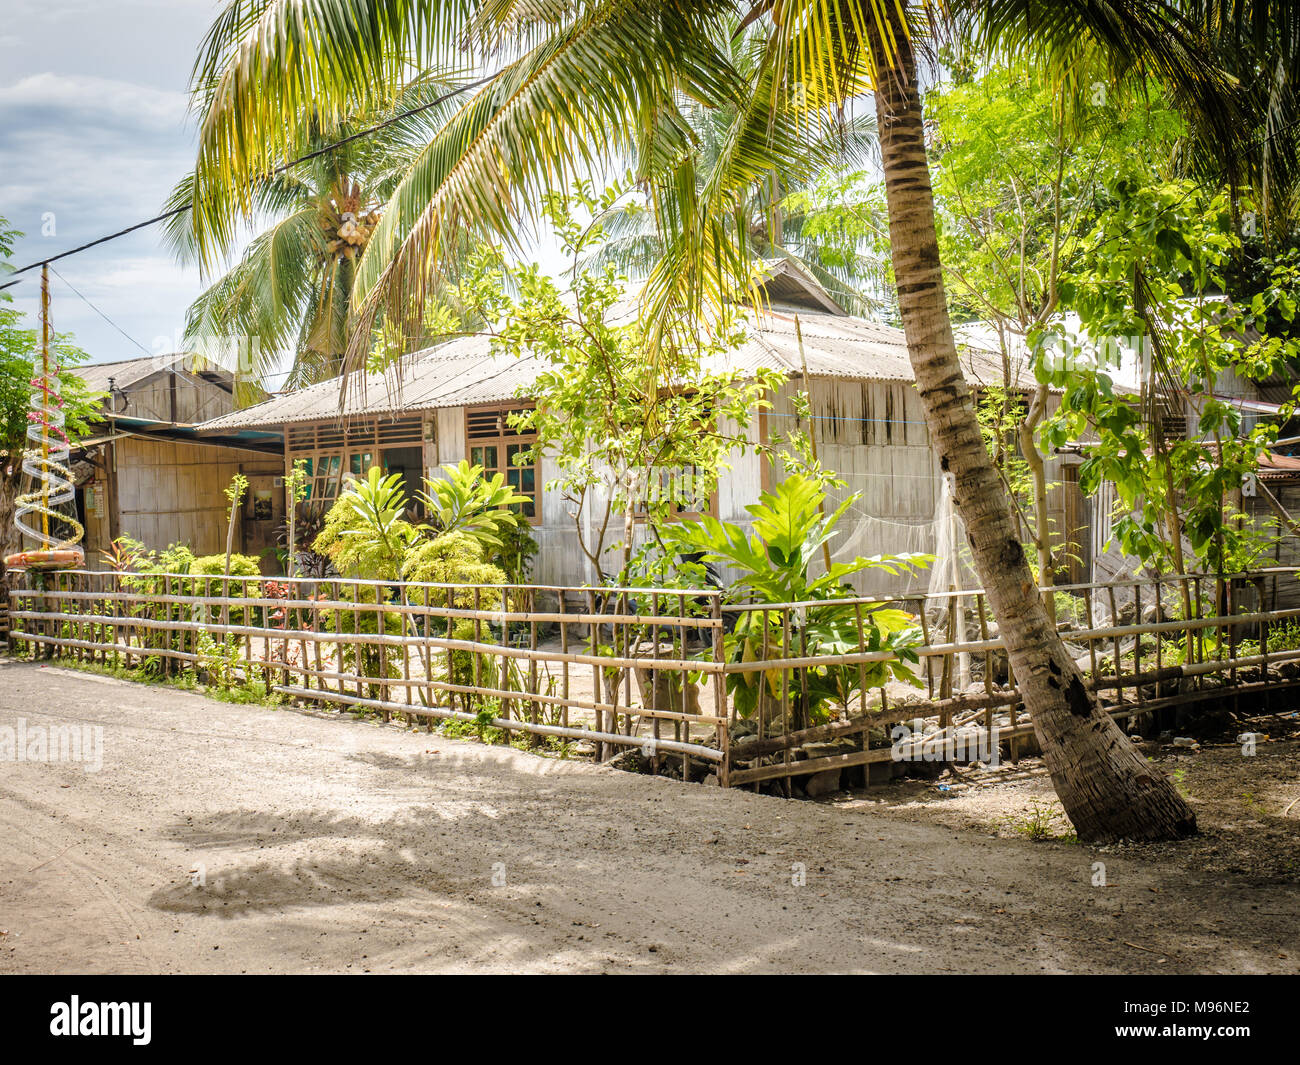 Wooden house in a typical traditional village of south Flores island, East Nusa Tenggara, Indonesia. Outstanding local architecture. - Stock Image